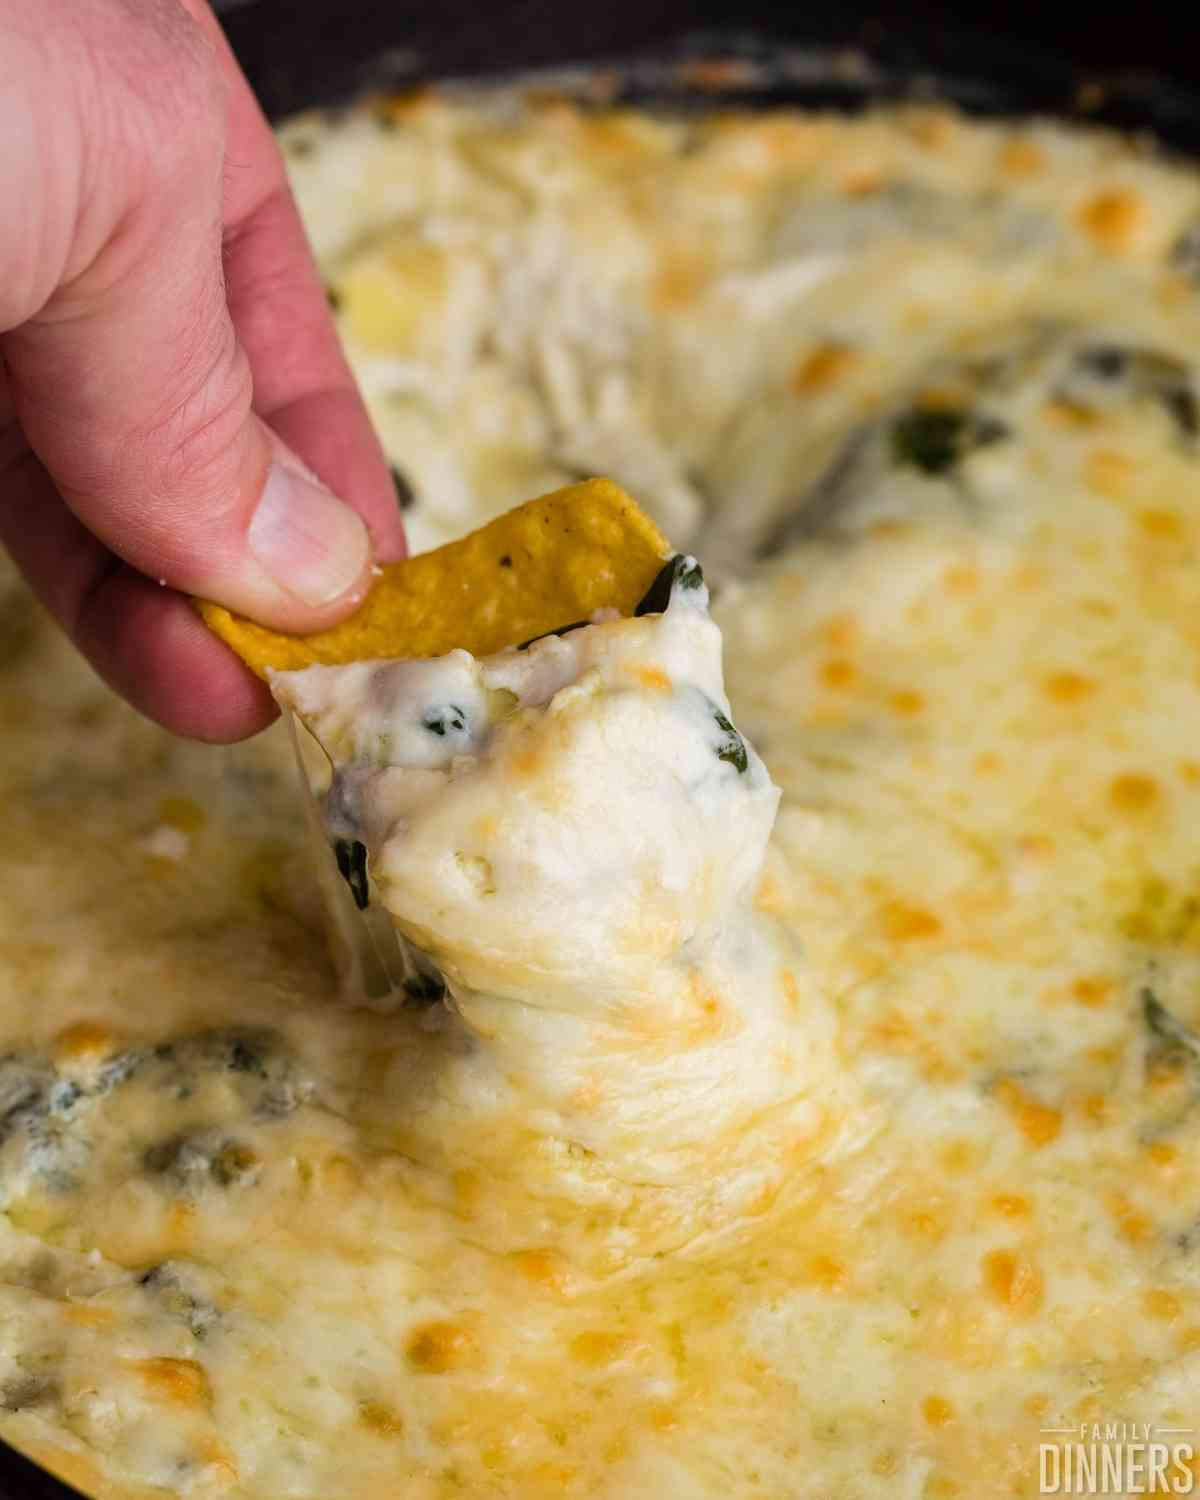 yellow corn chip being dipped into hot cheesy spinach and artichoke dip in a black cast iron pan